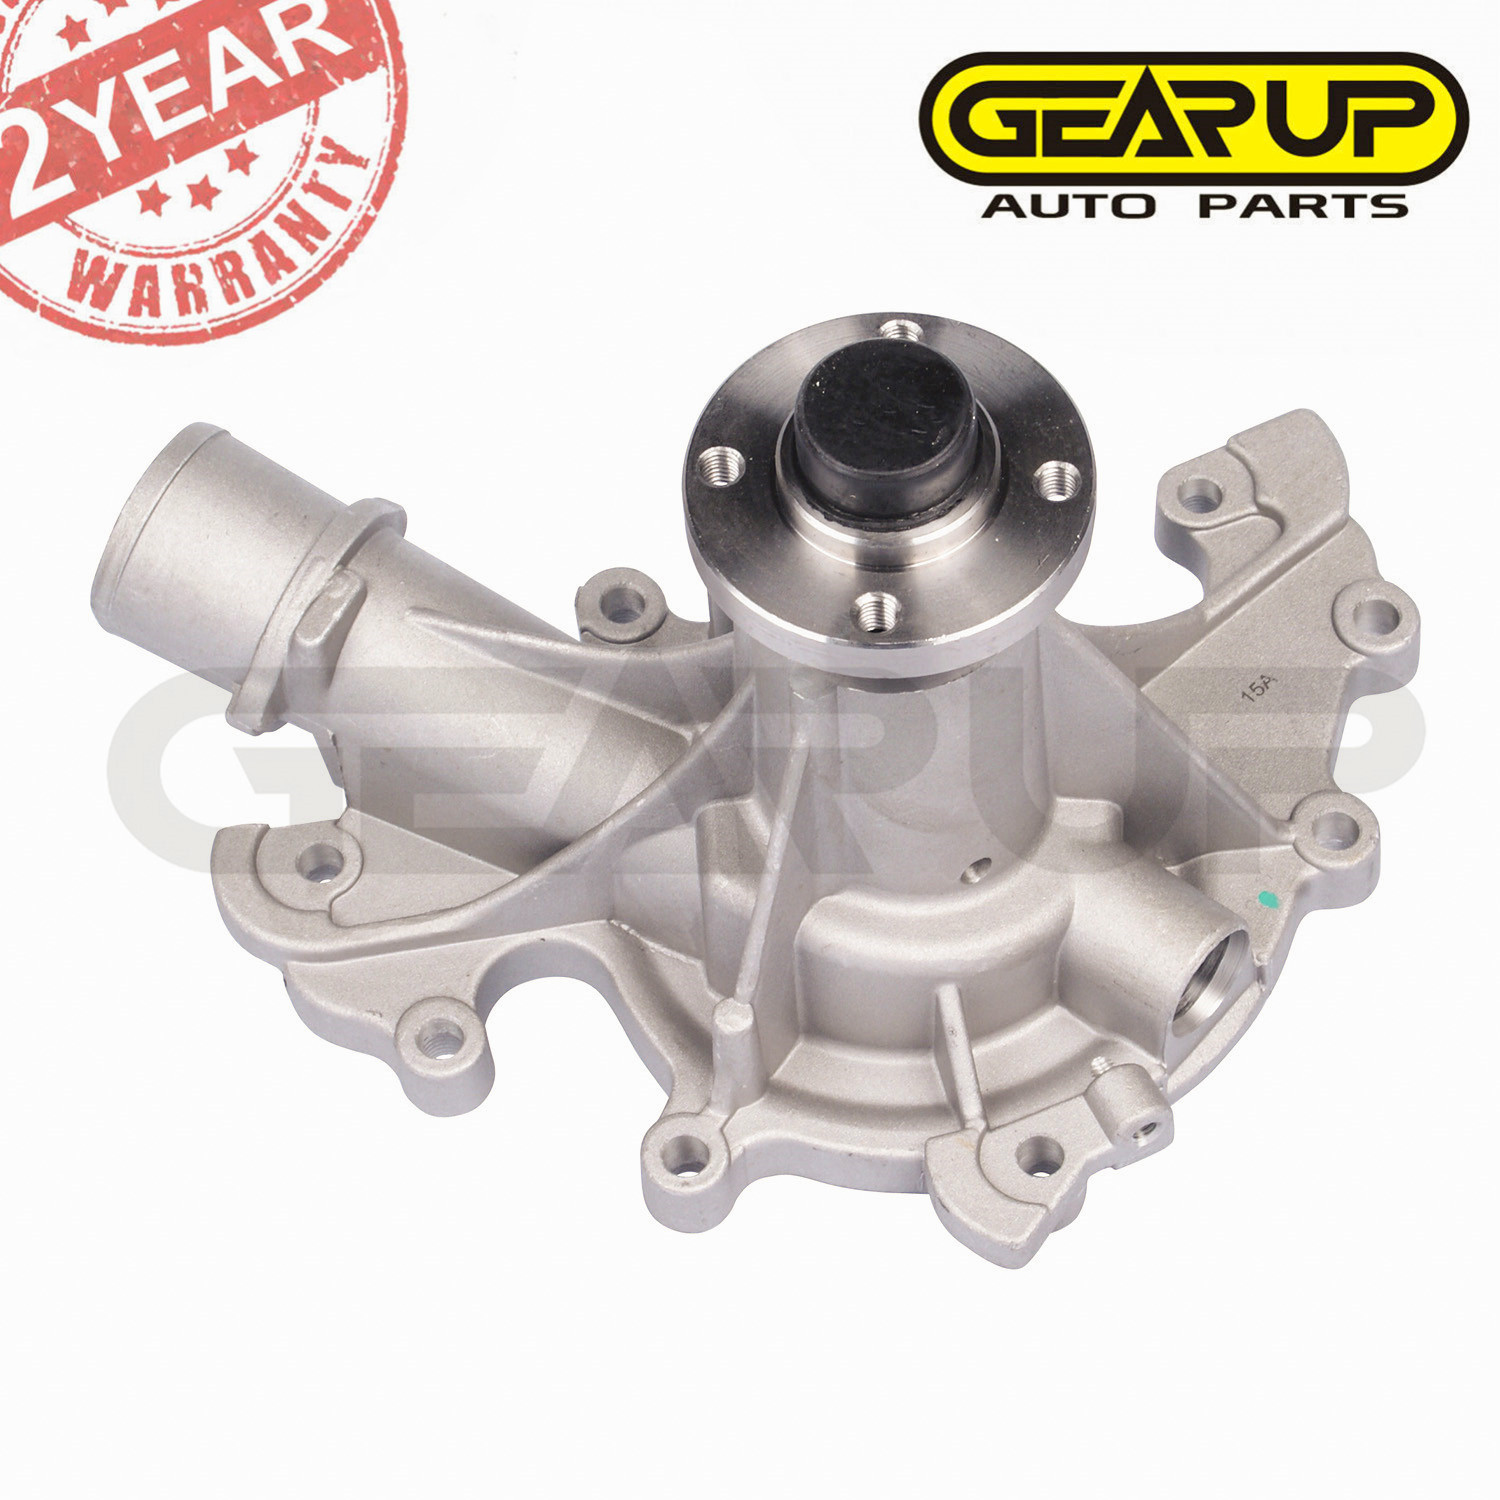 New Engine Water Pump For 1997-2003 Ford F-150 E-150 Econoline 4.2L OHV